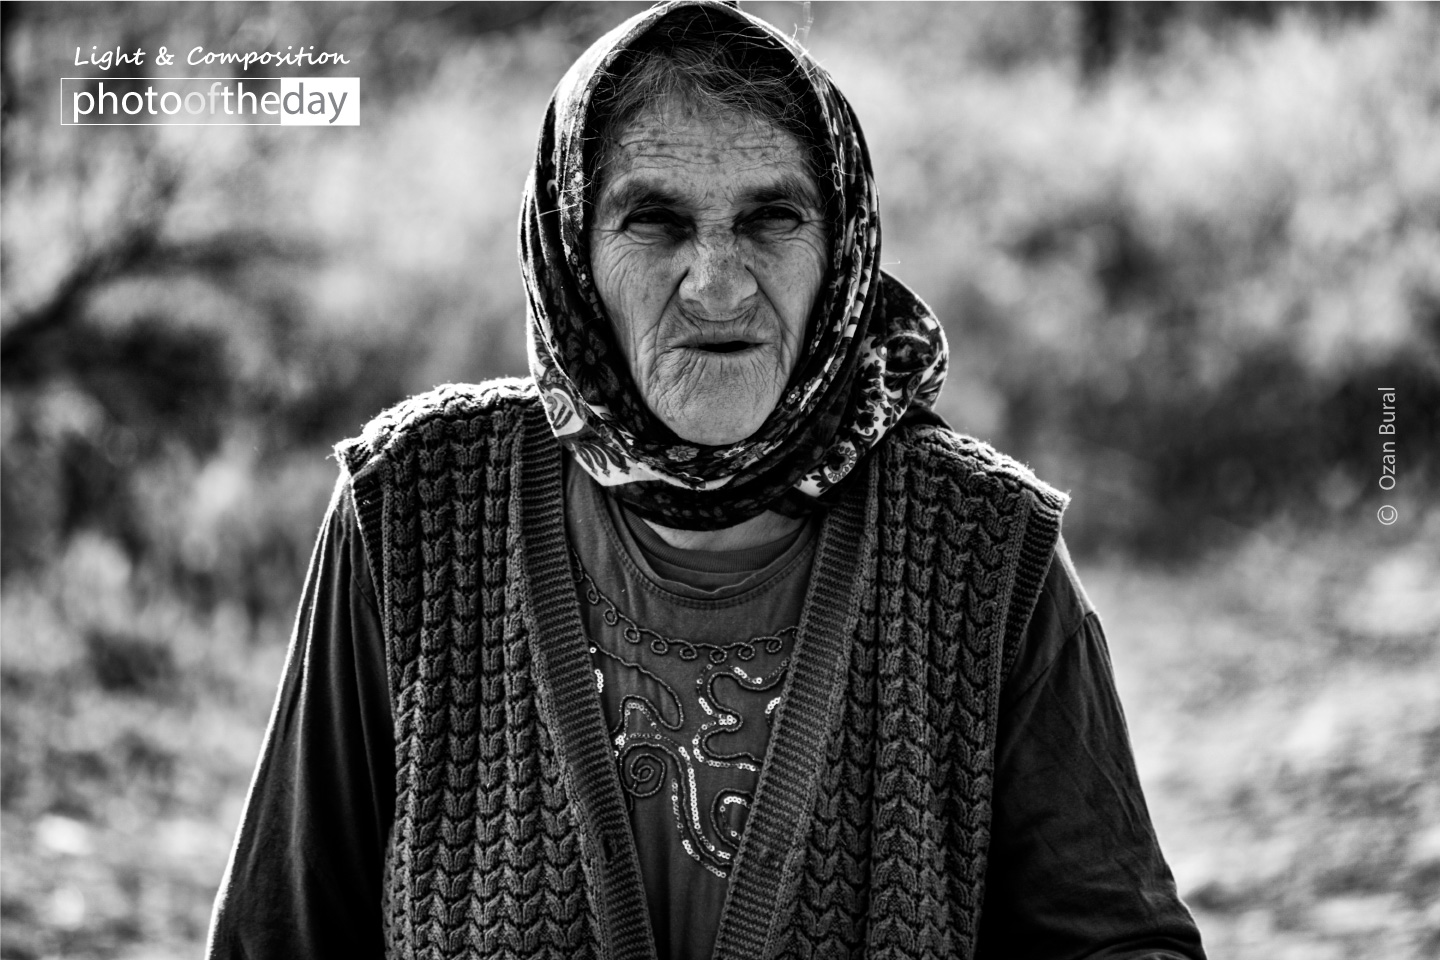 Traces of Old Age by Ozan Bural